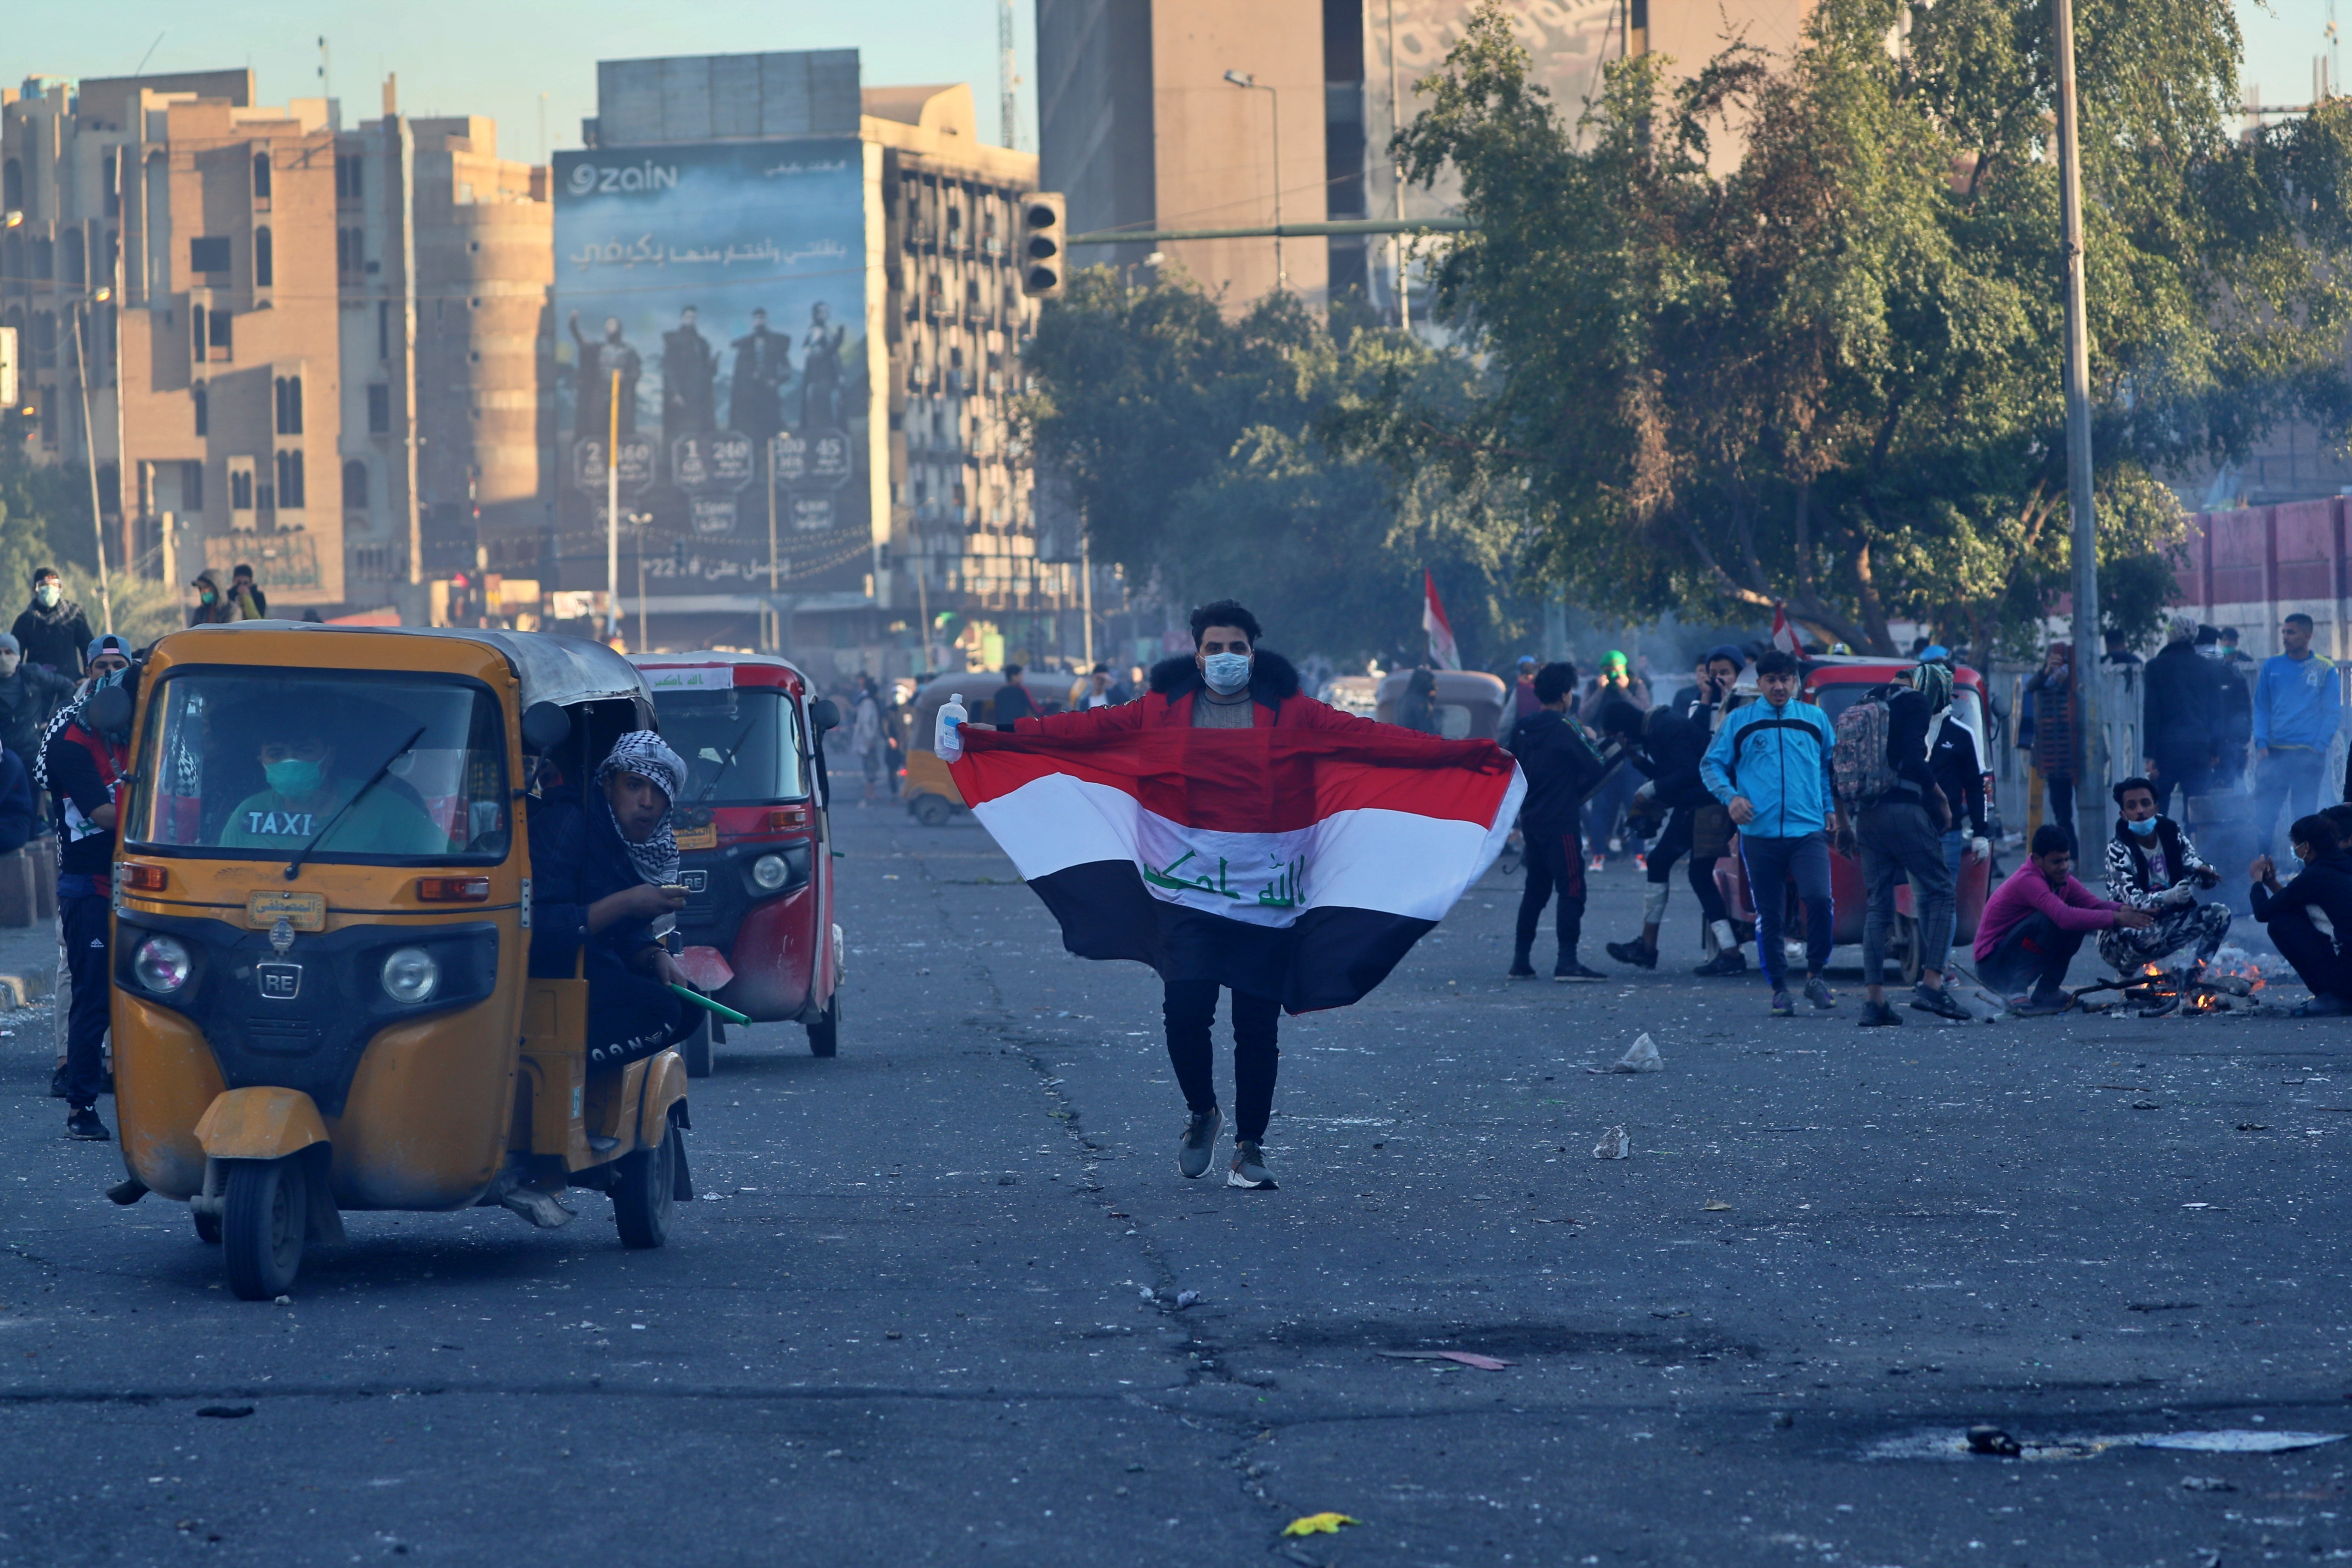 Anti-government protesters close Baghdad's Khilani square during clashes with security forces, Iraq, Sunday, Jan. 26, 2020.